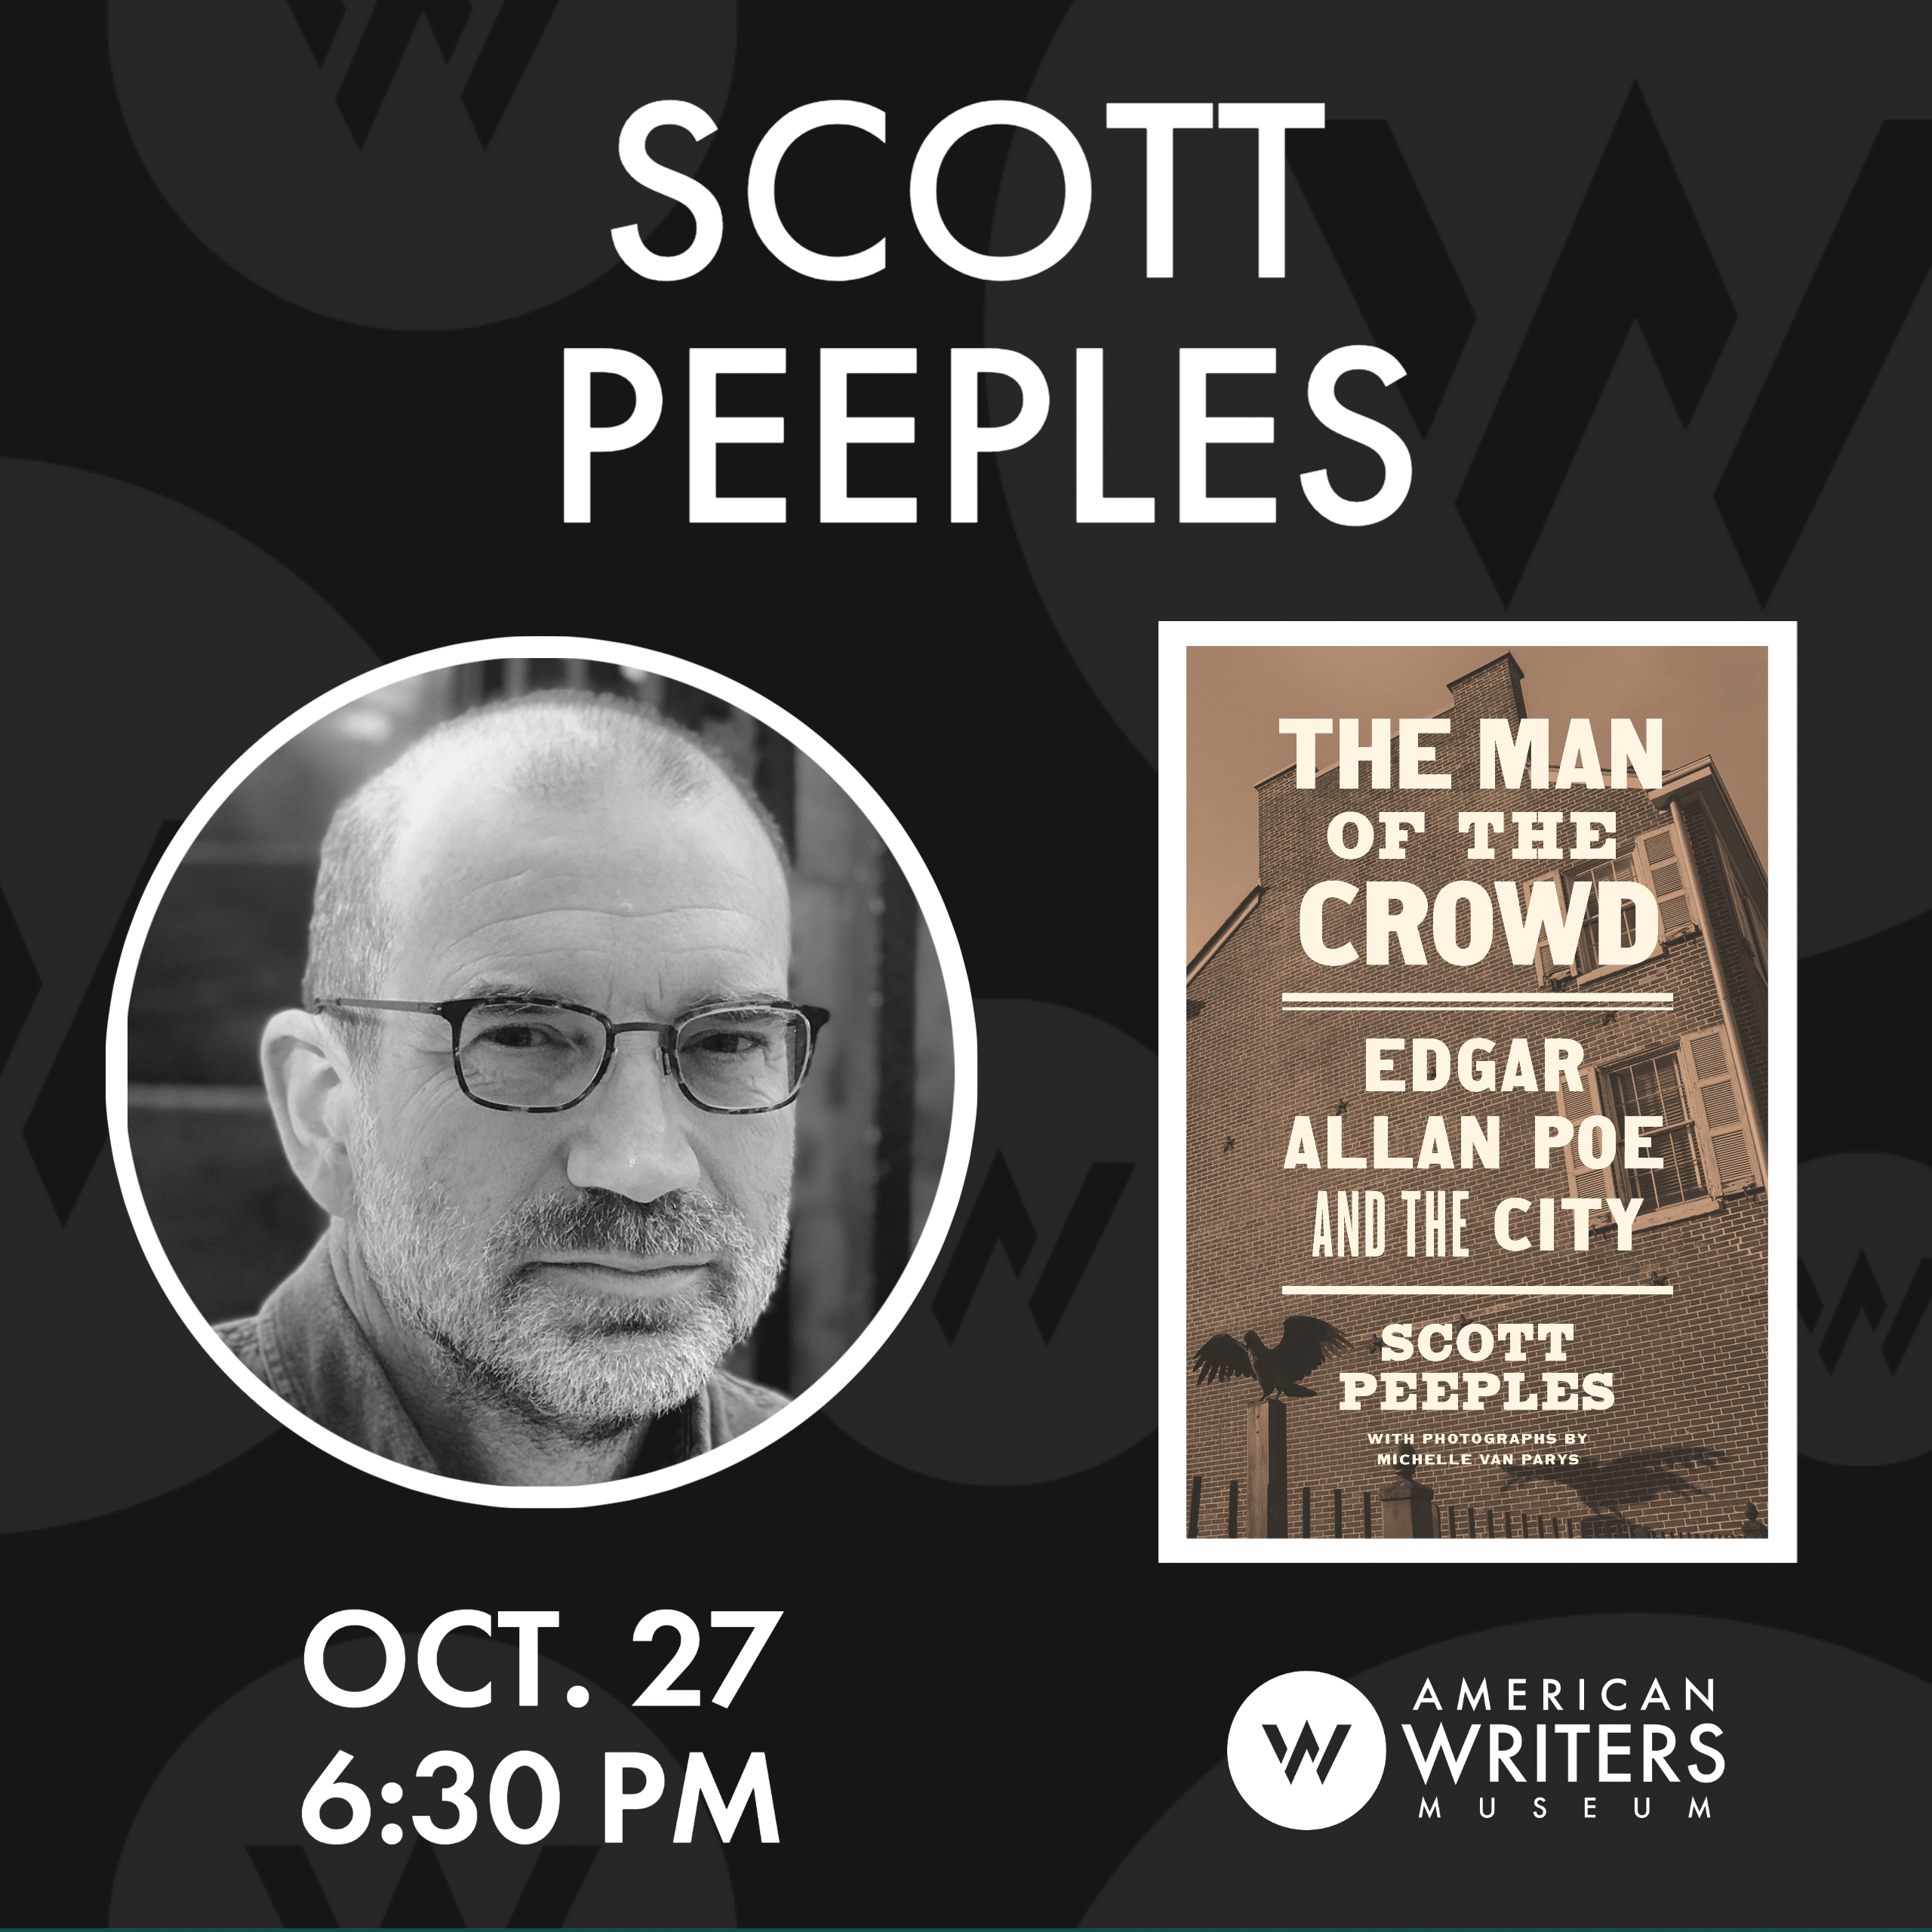 American Writers Museum presents a conversation with Scott Peeples, about his new book Man of the Crowd: Edgar Allan Poe and the City on October 27